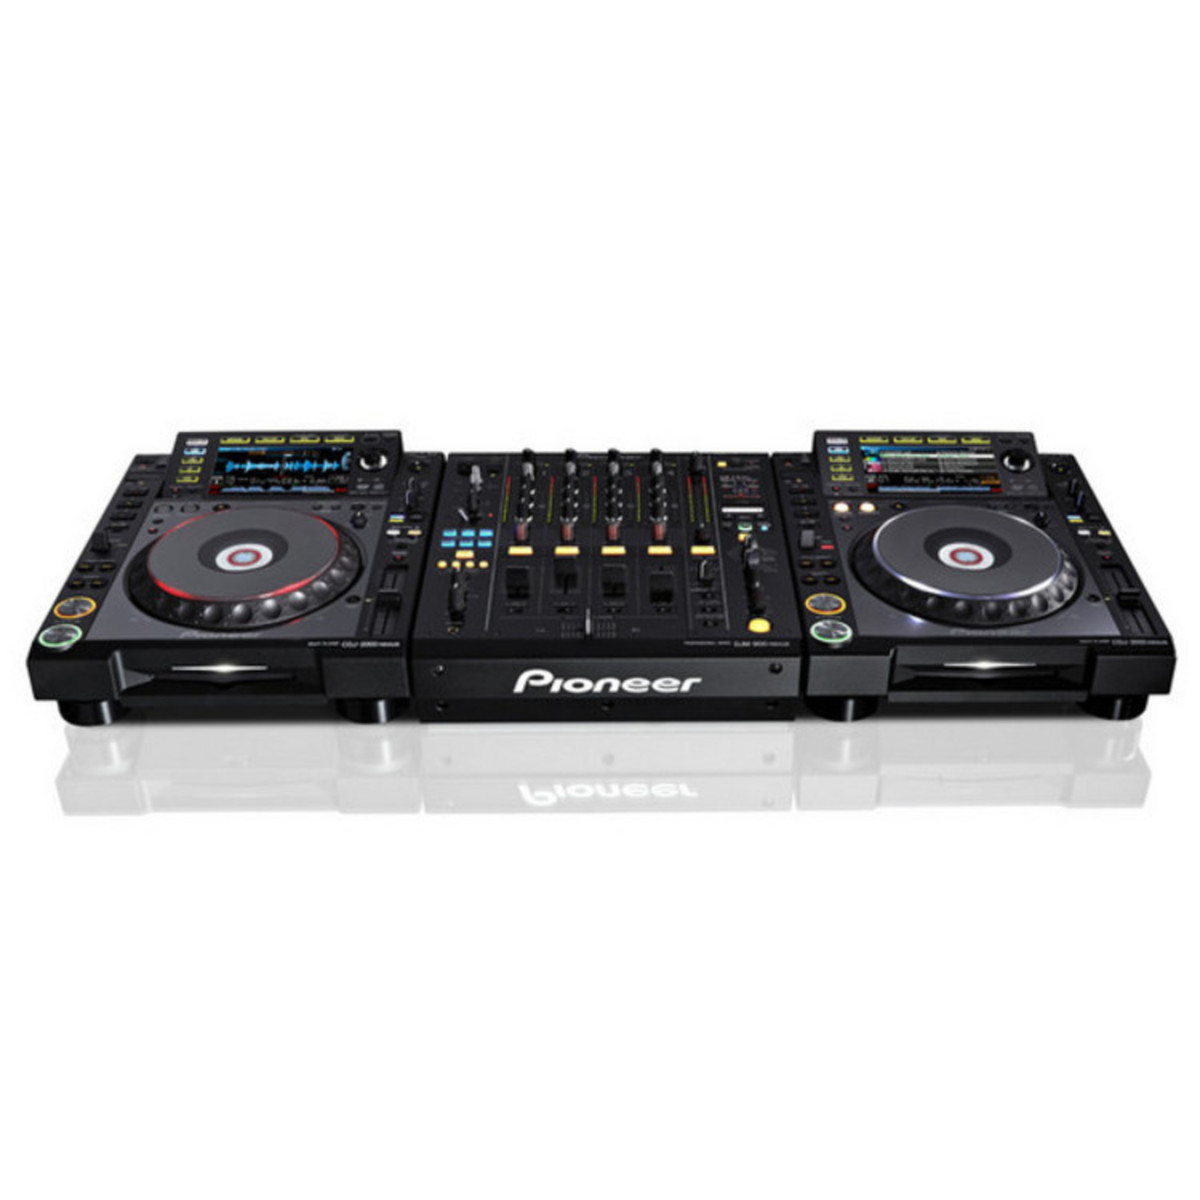 Pioneer CDJ-2000 Nexus Deck Multi-Reproductor Digital Para